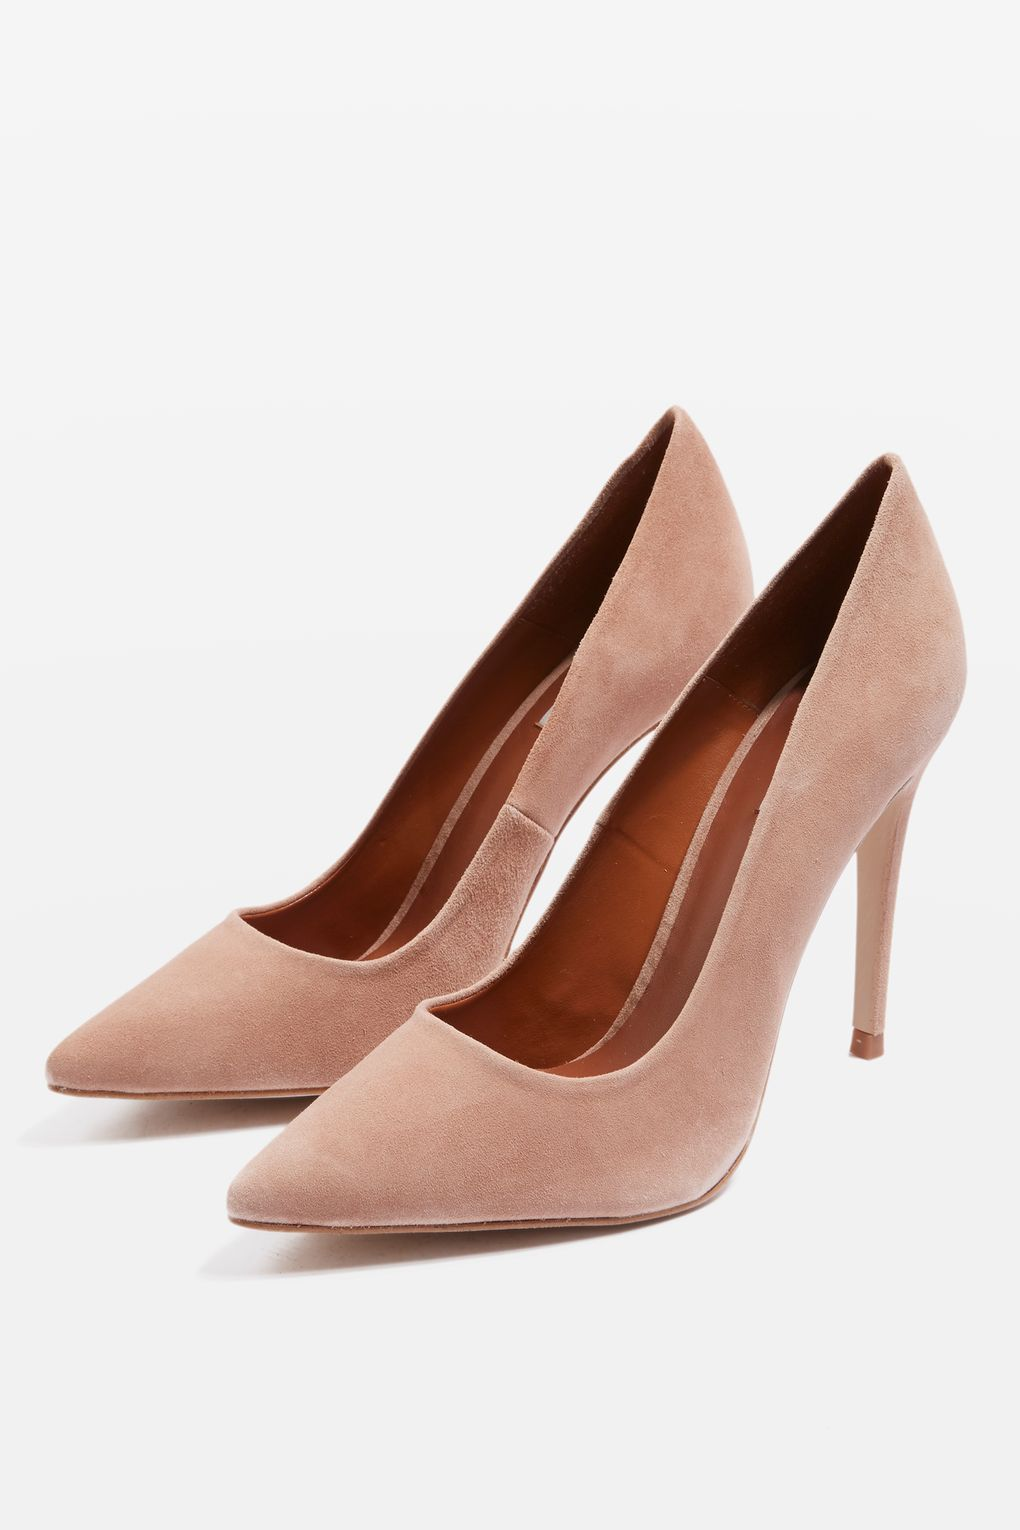 DOLCIS NUDE SUEDE- GOLD TOE DETAILED SPECIAL OCCASION COURT SHOES SIZE UK 5 NEW